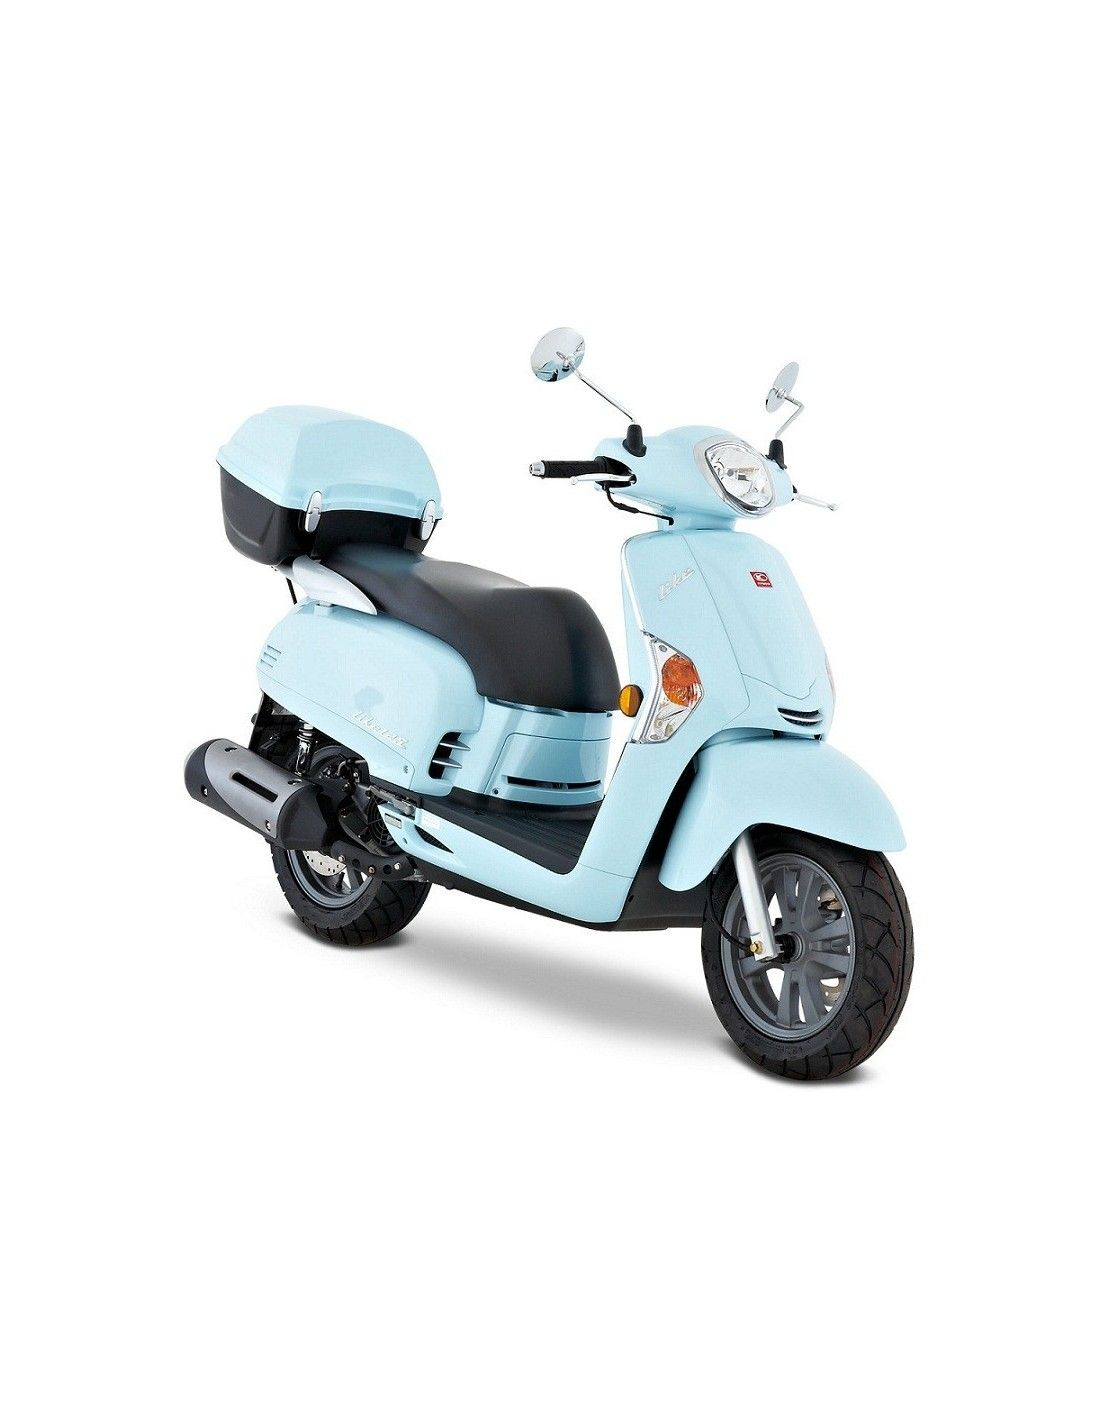 top box kymco like